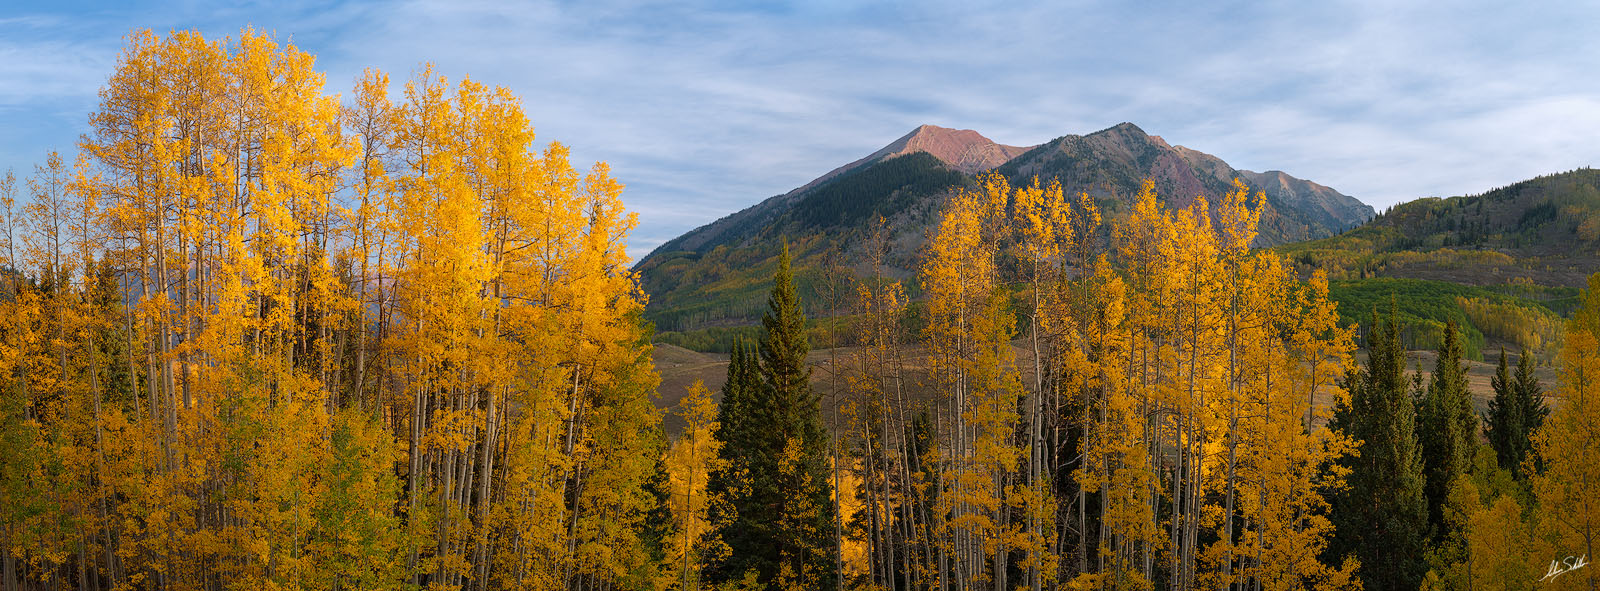 A panoramic view of fall color near Crested Butte with Avery Peak in the distance. © Adam Schallau, all rights reserved.